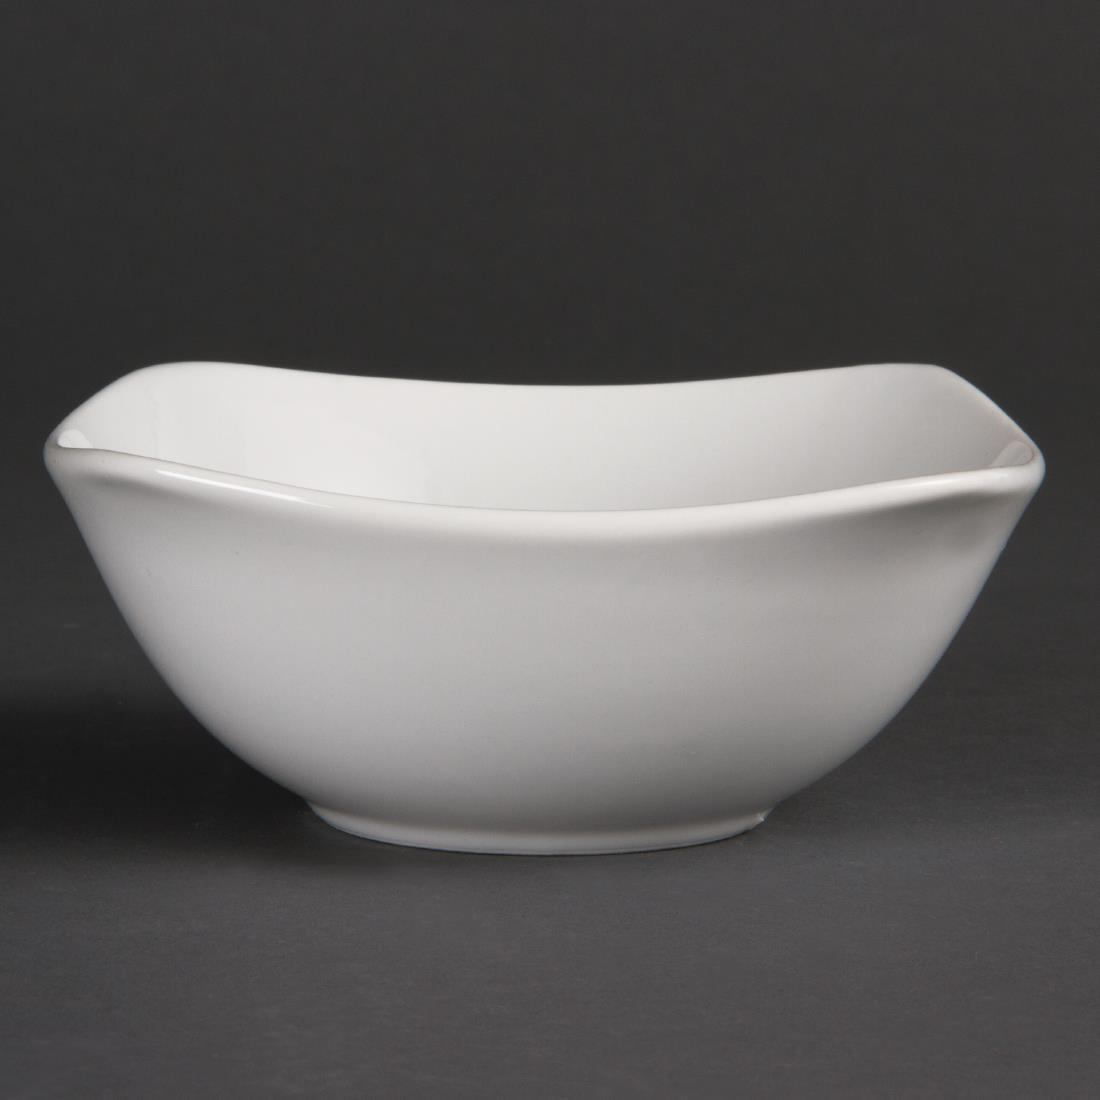 Olympia Whiteware Rounded Square Bowls 140mm